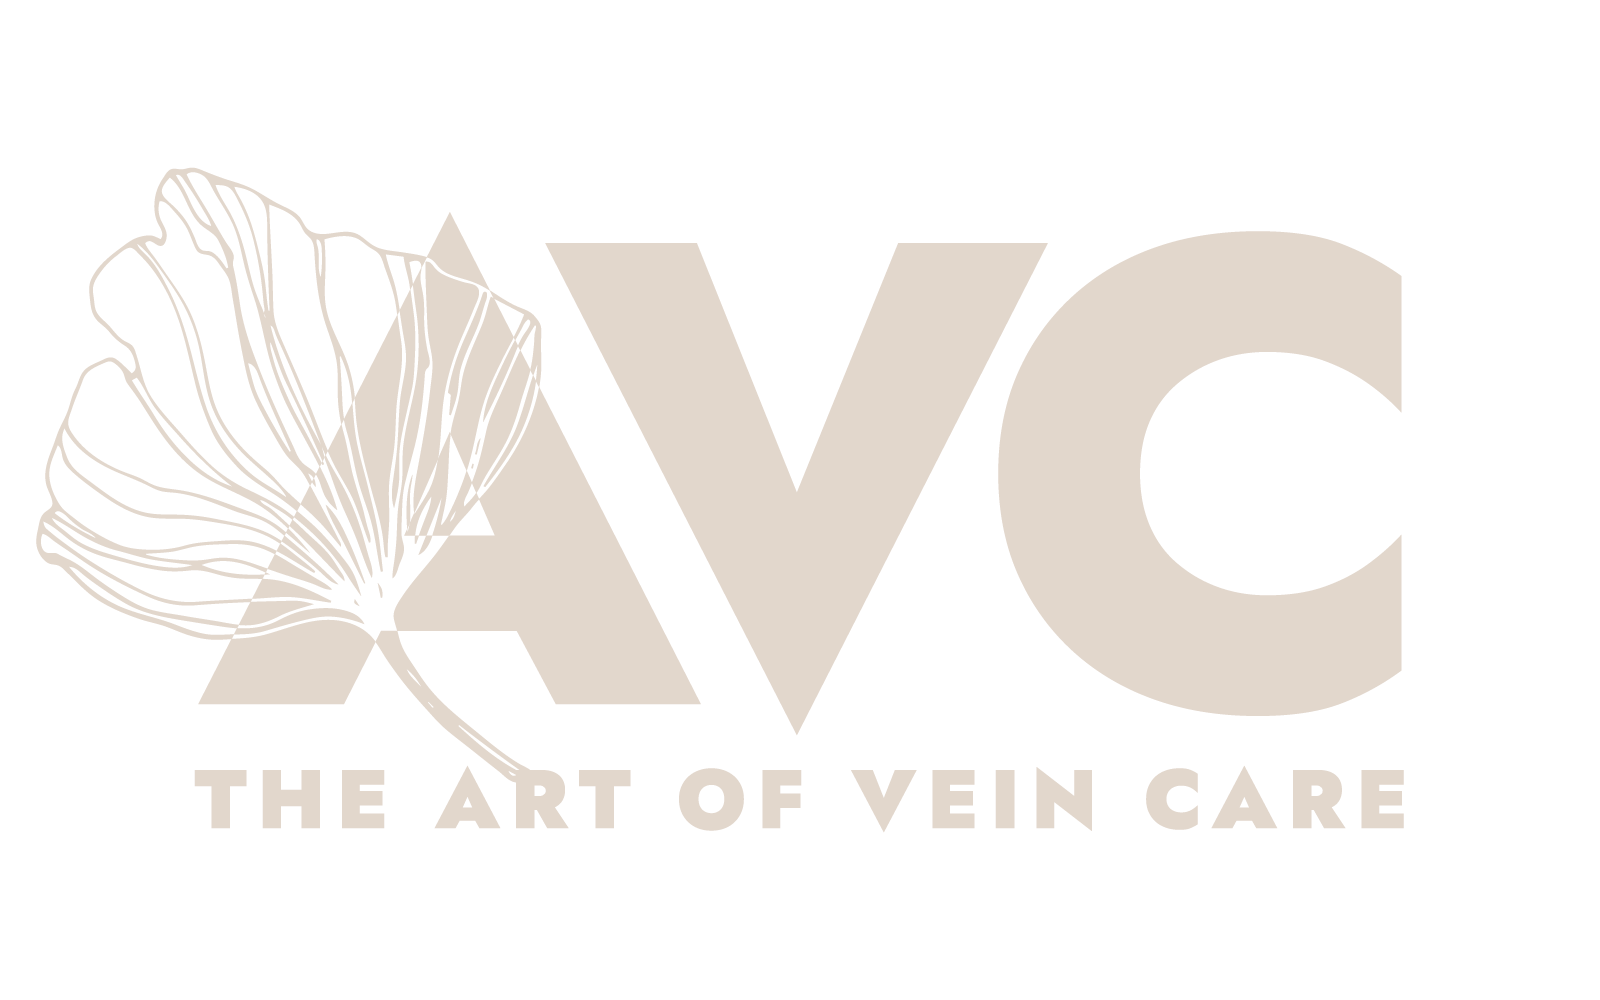 The Art of Vein Care